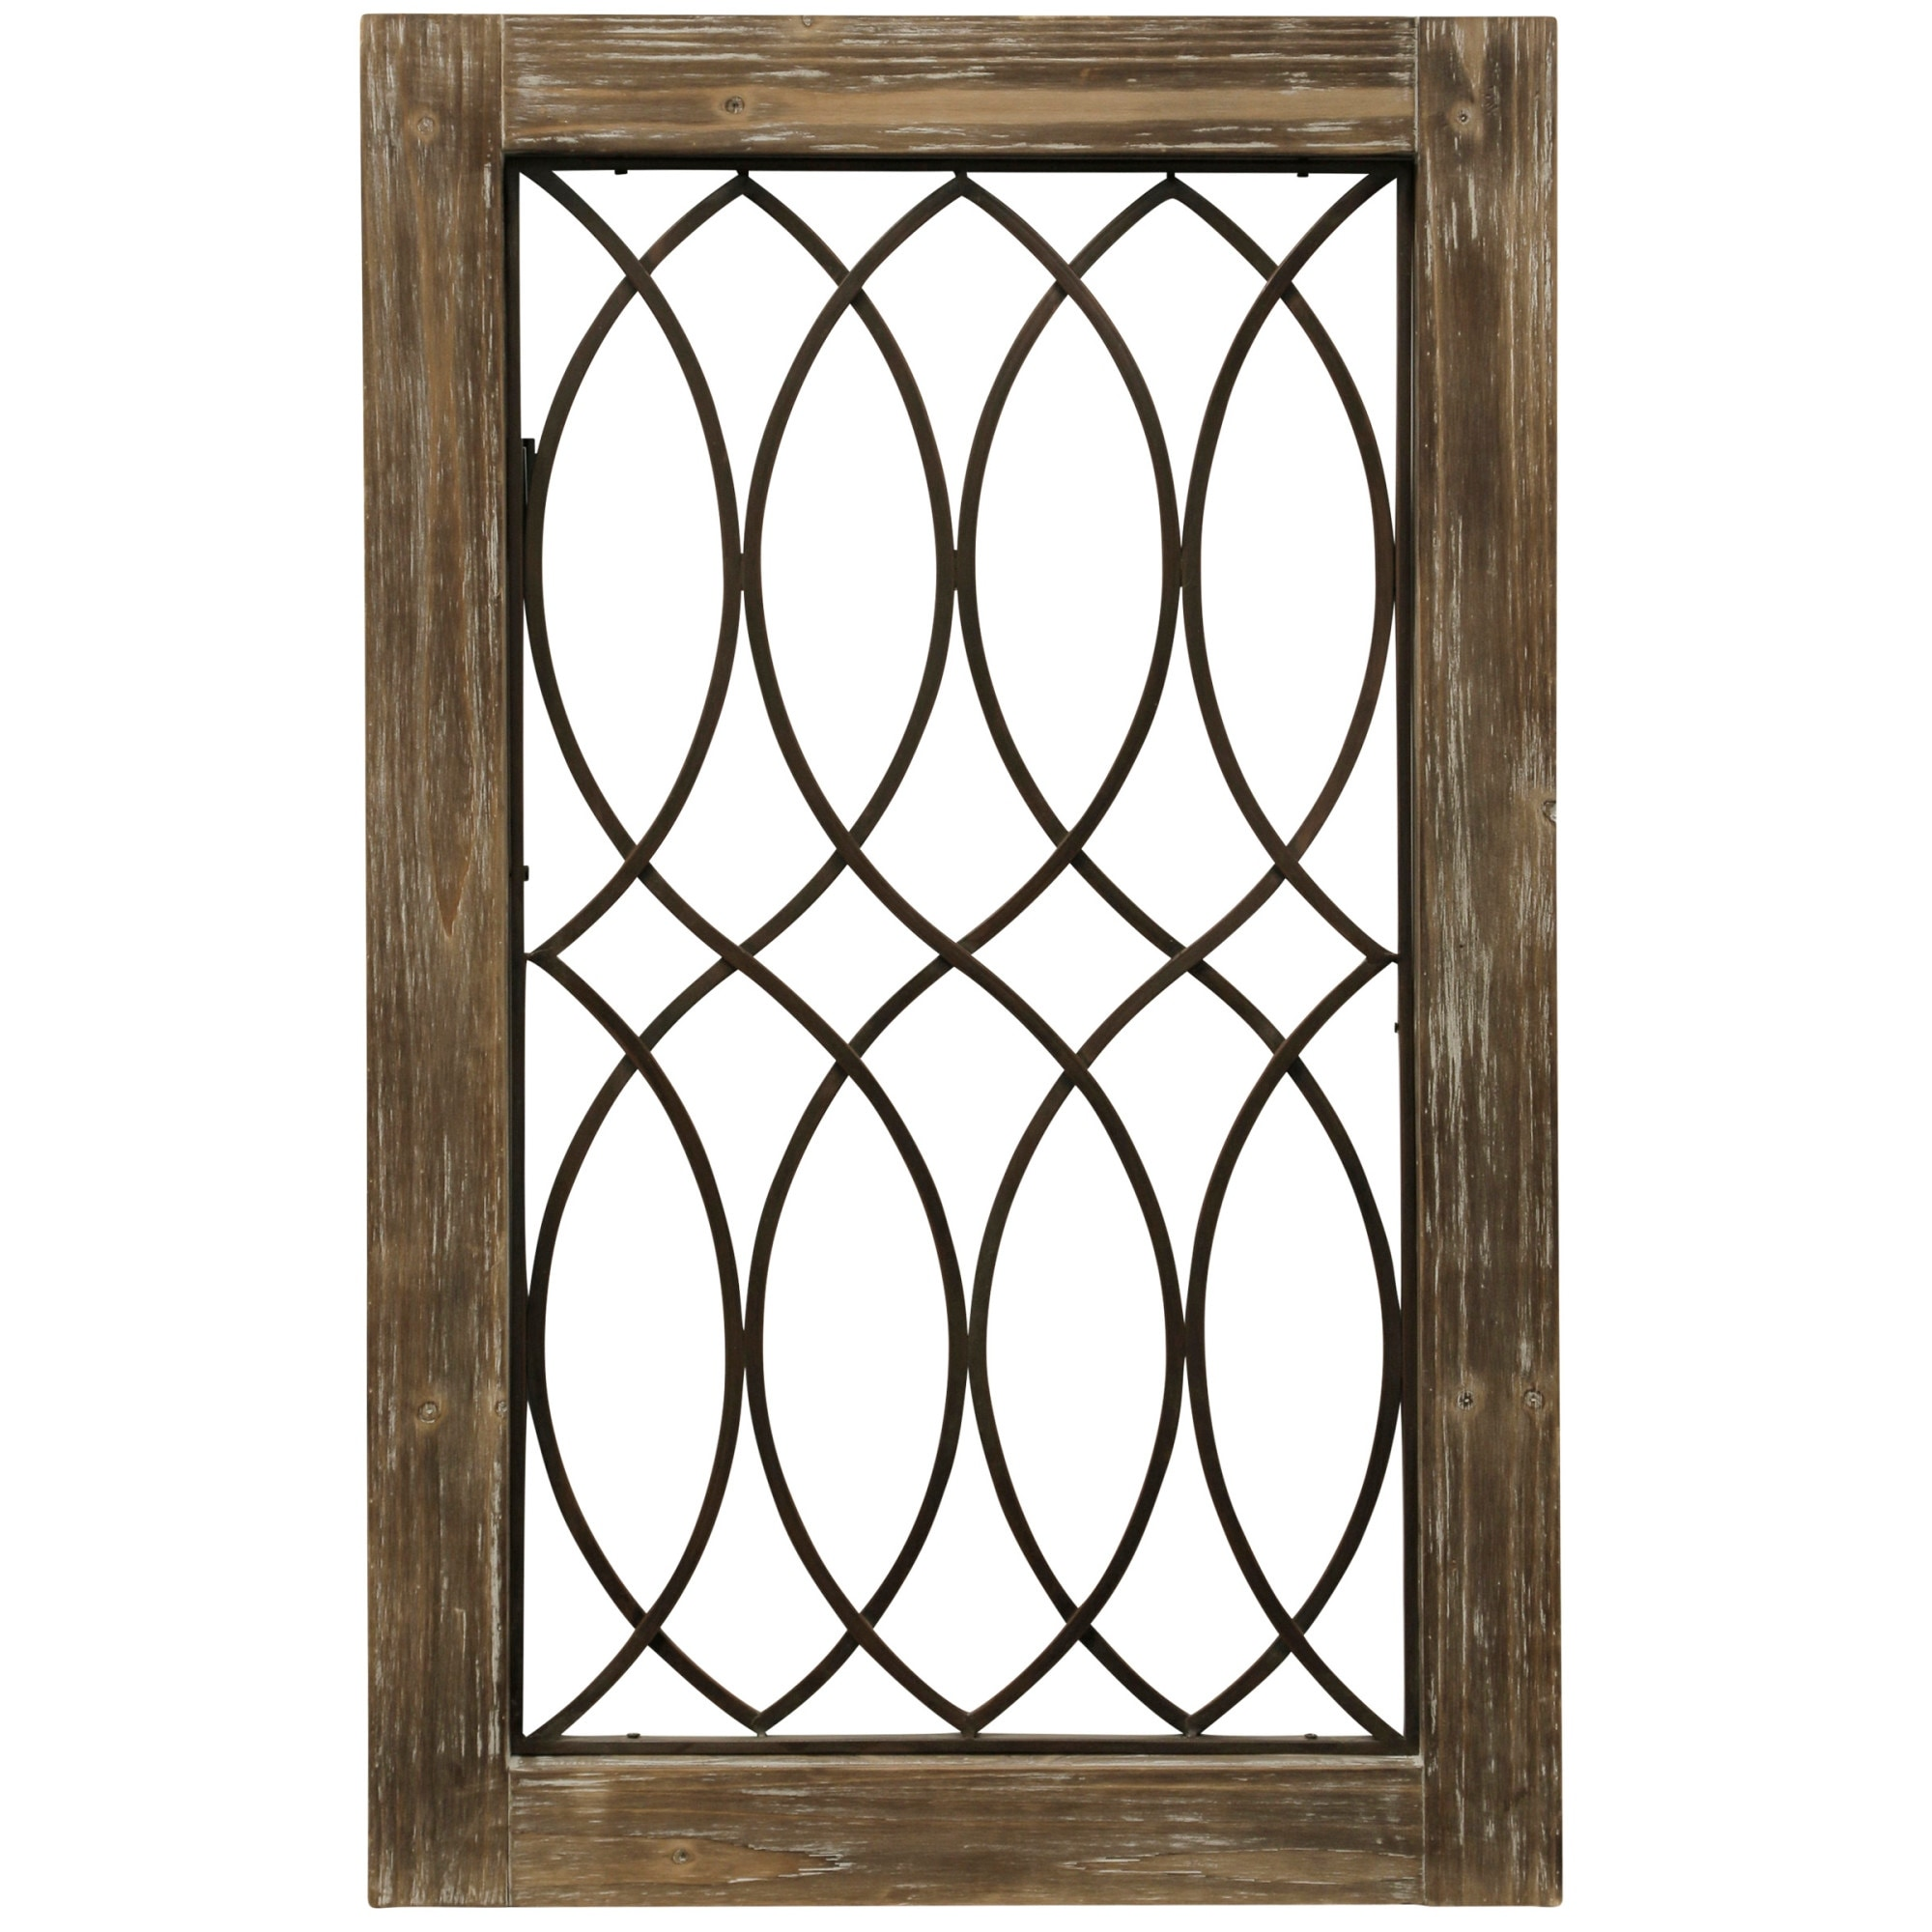 StyleCraft SC-WI52459  37 1/2 x 23 1/2 - Grate 2 Metal and Plywood Farm and Country Wall Panel - Natural